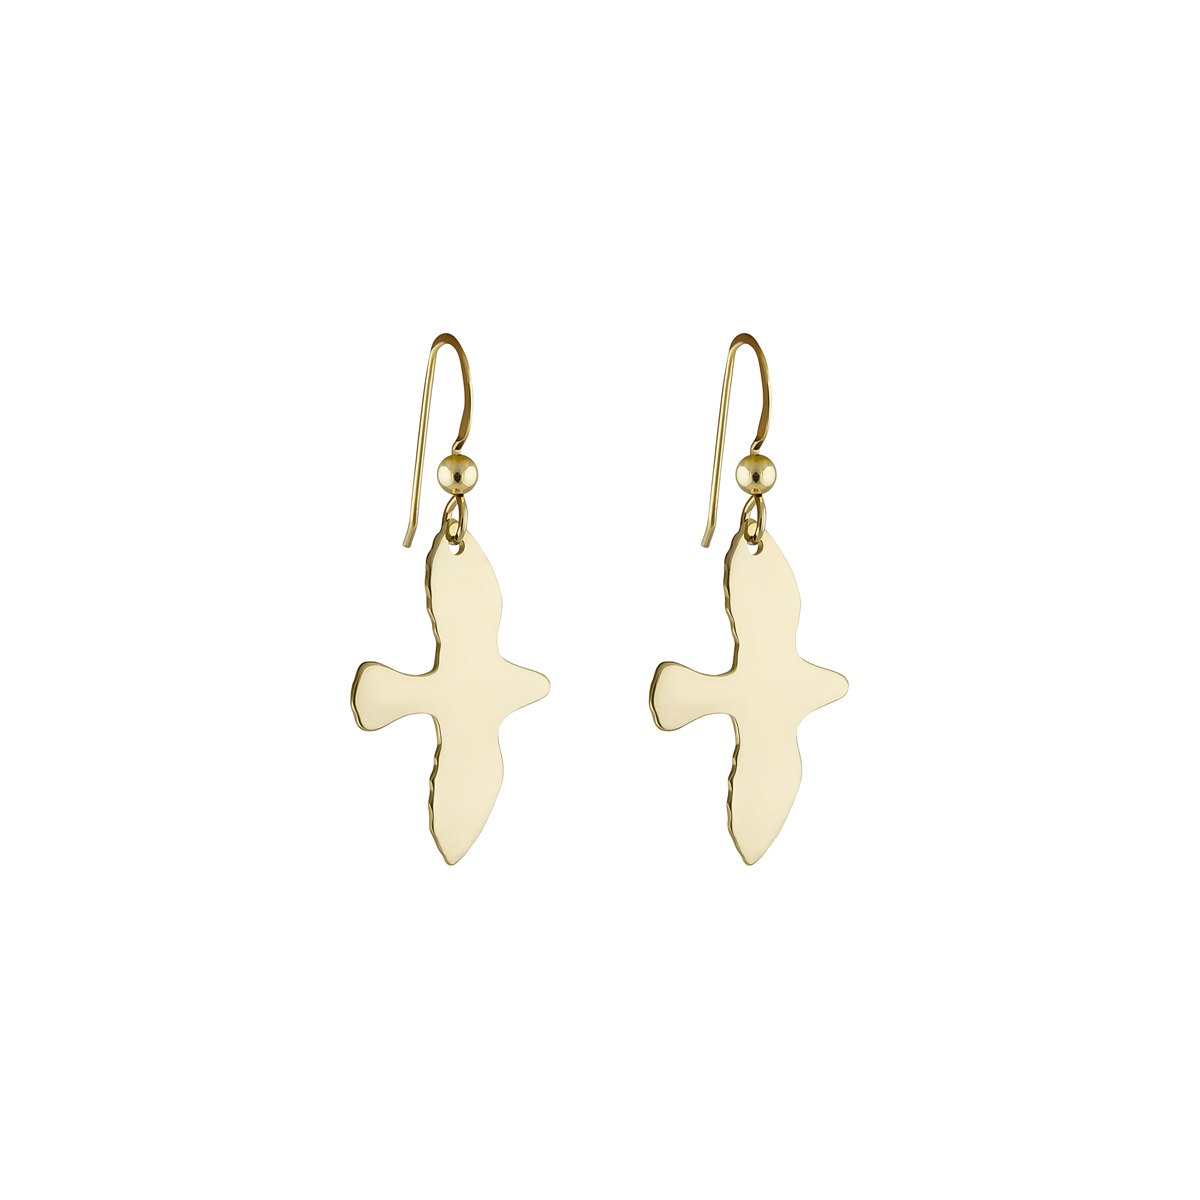 GOLDEN DOVE EARRINGS i gruppen ÖRHÄNGEN hos EMMA ISRAELSSON (ear022)